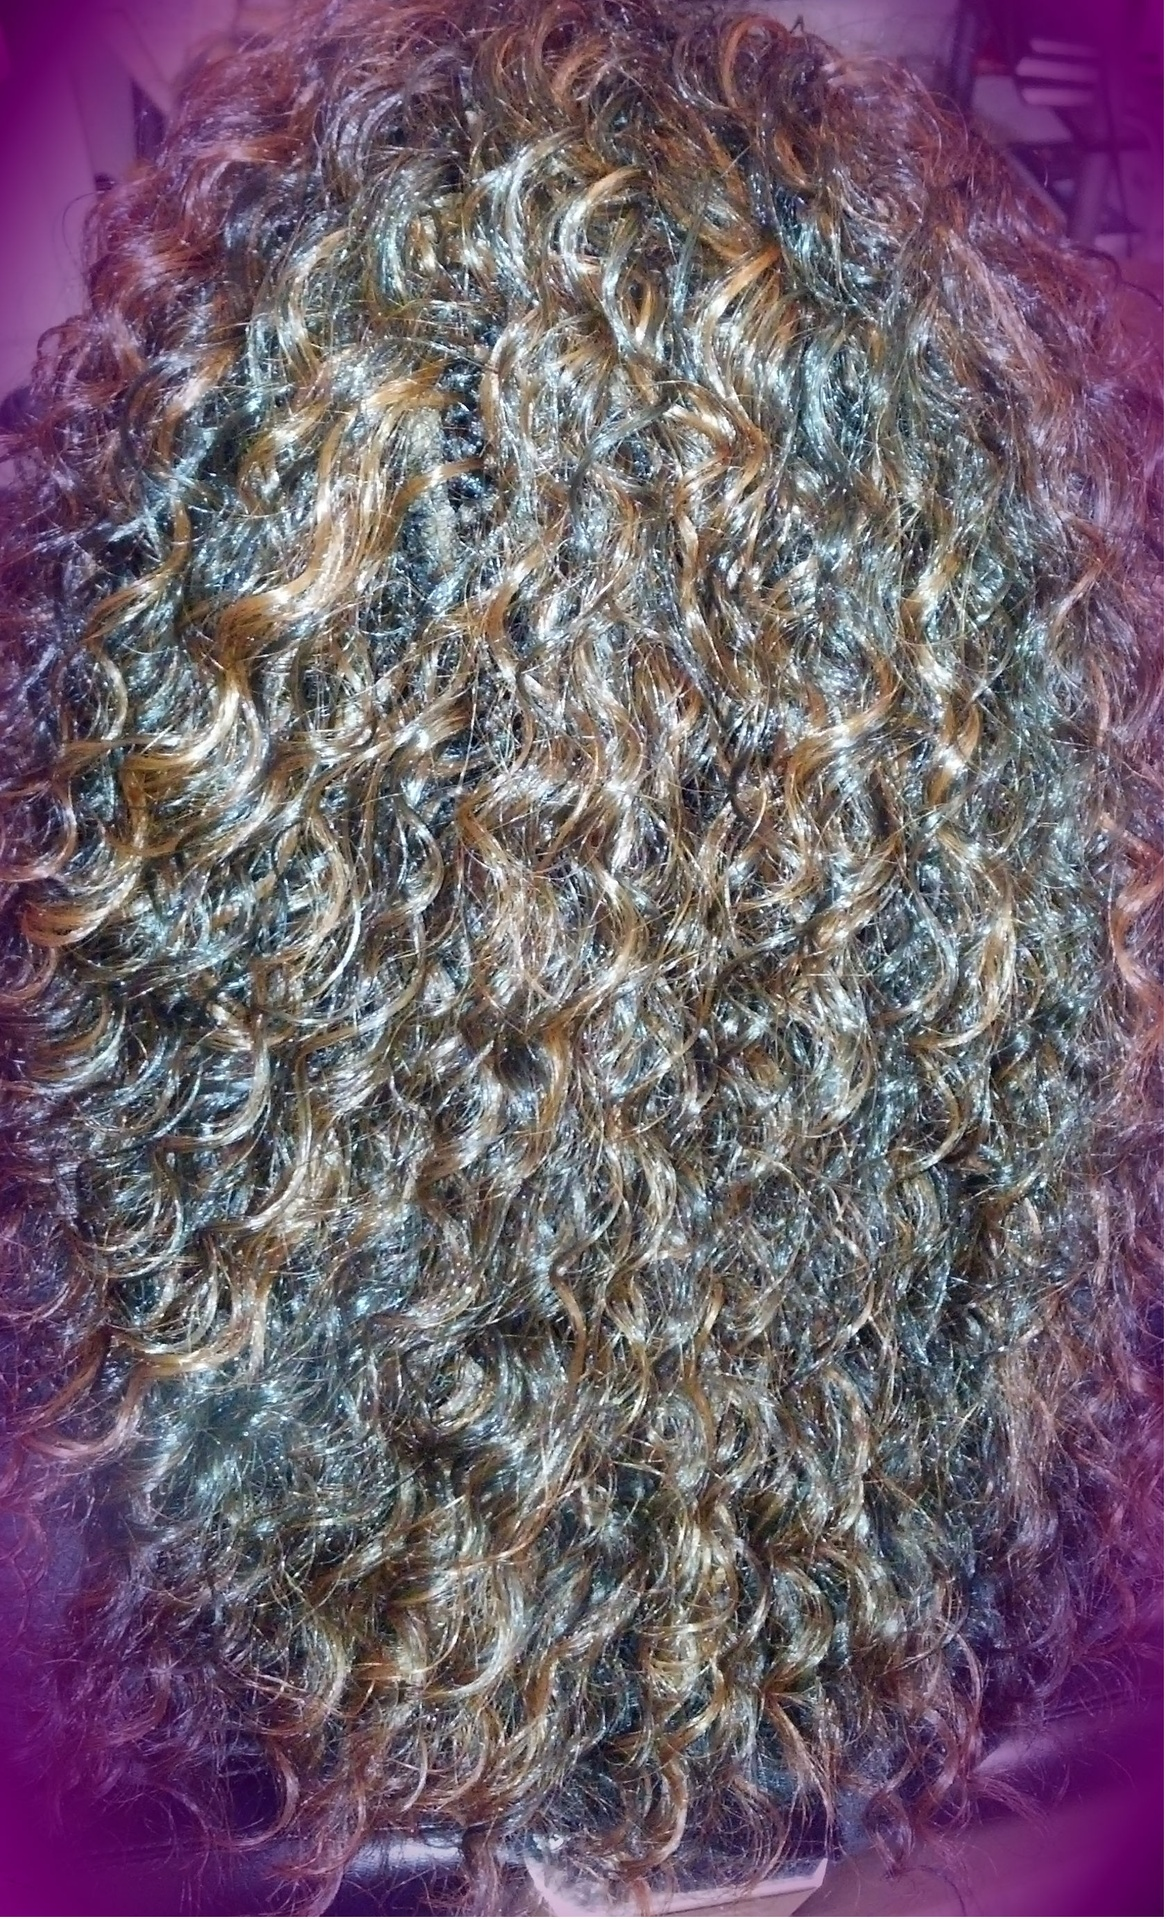 Micro treebraid (one layer) with crochet edges